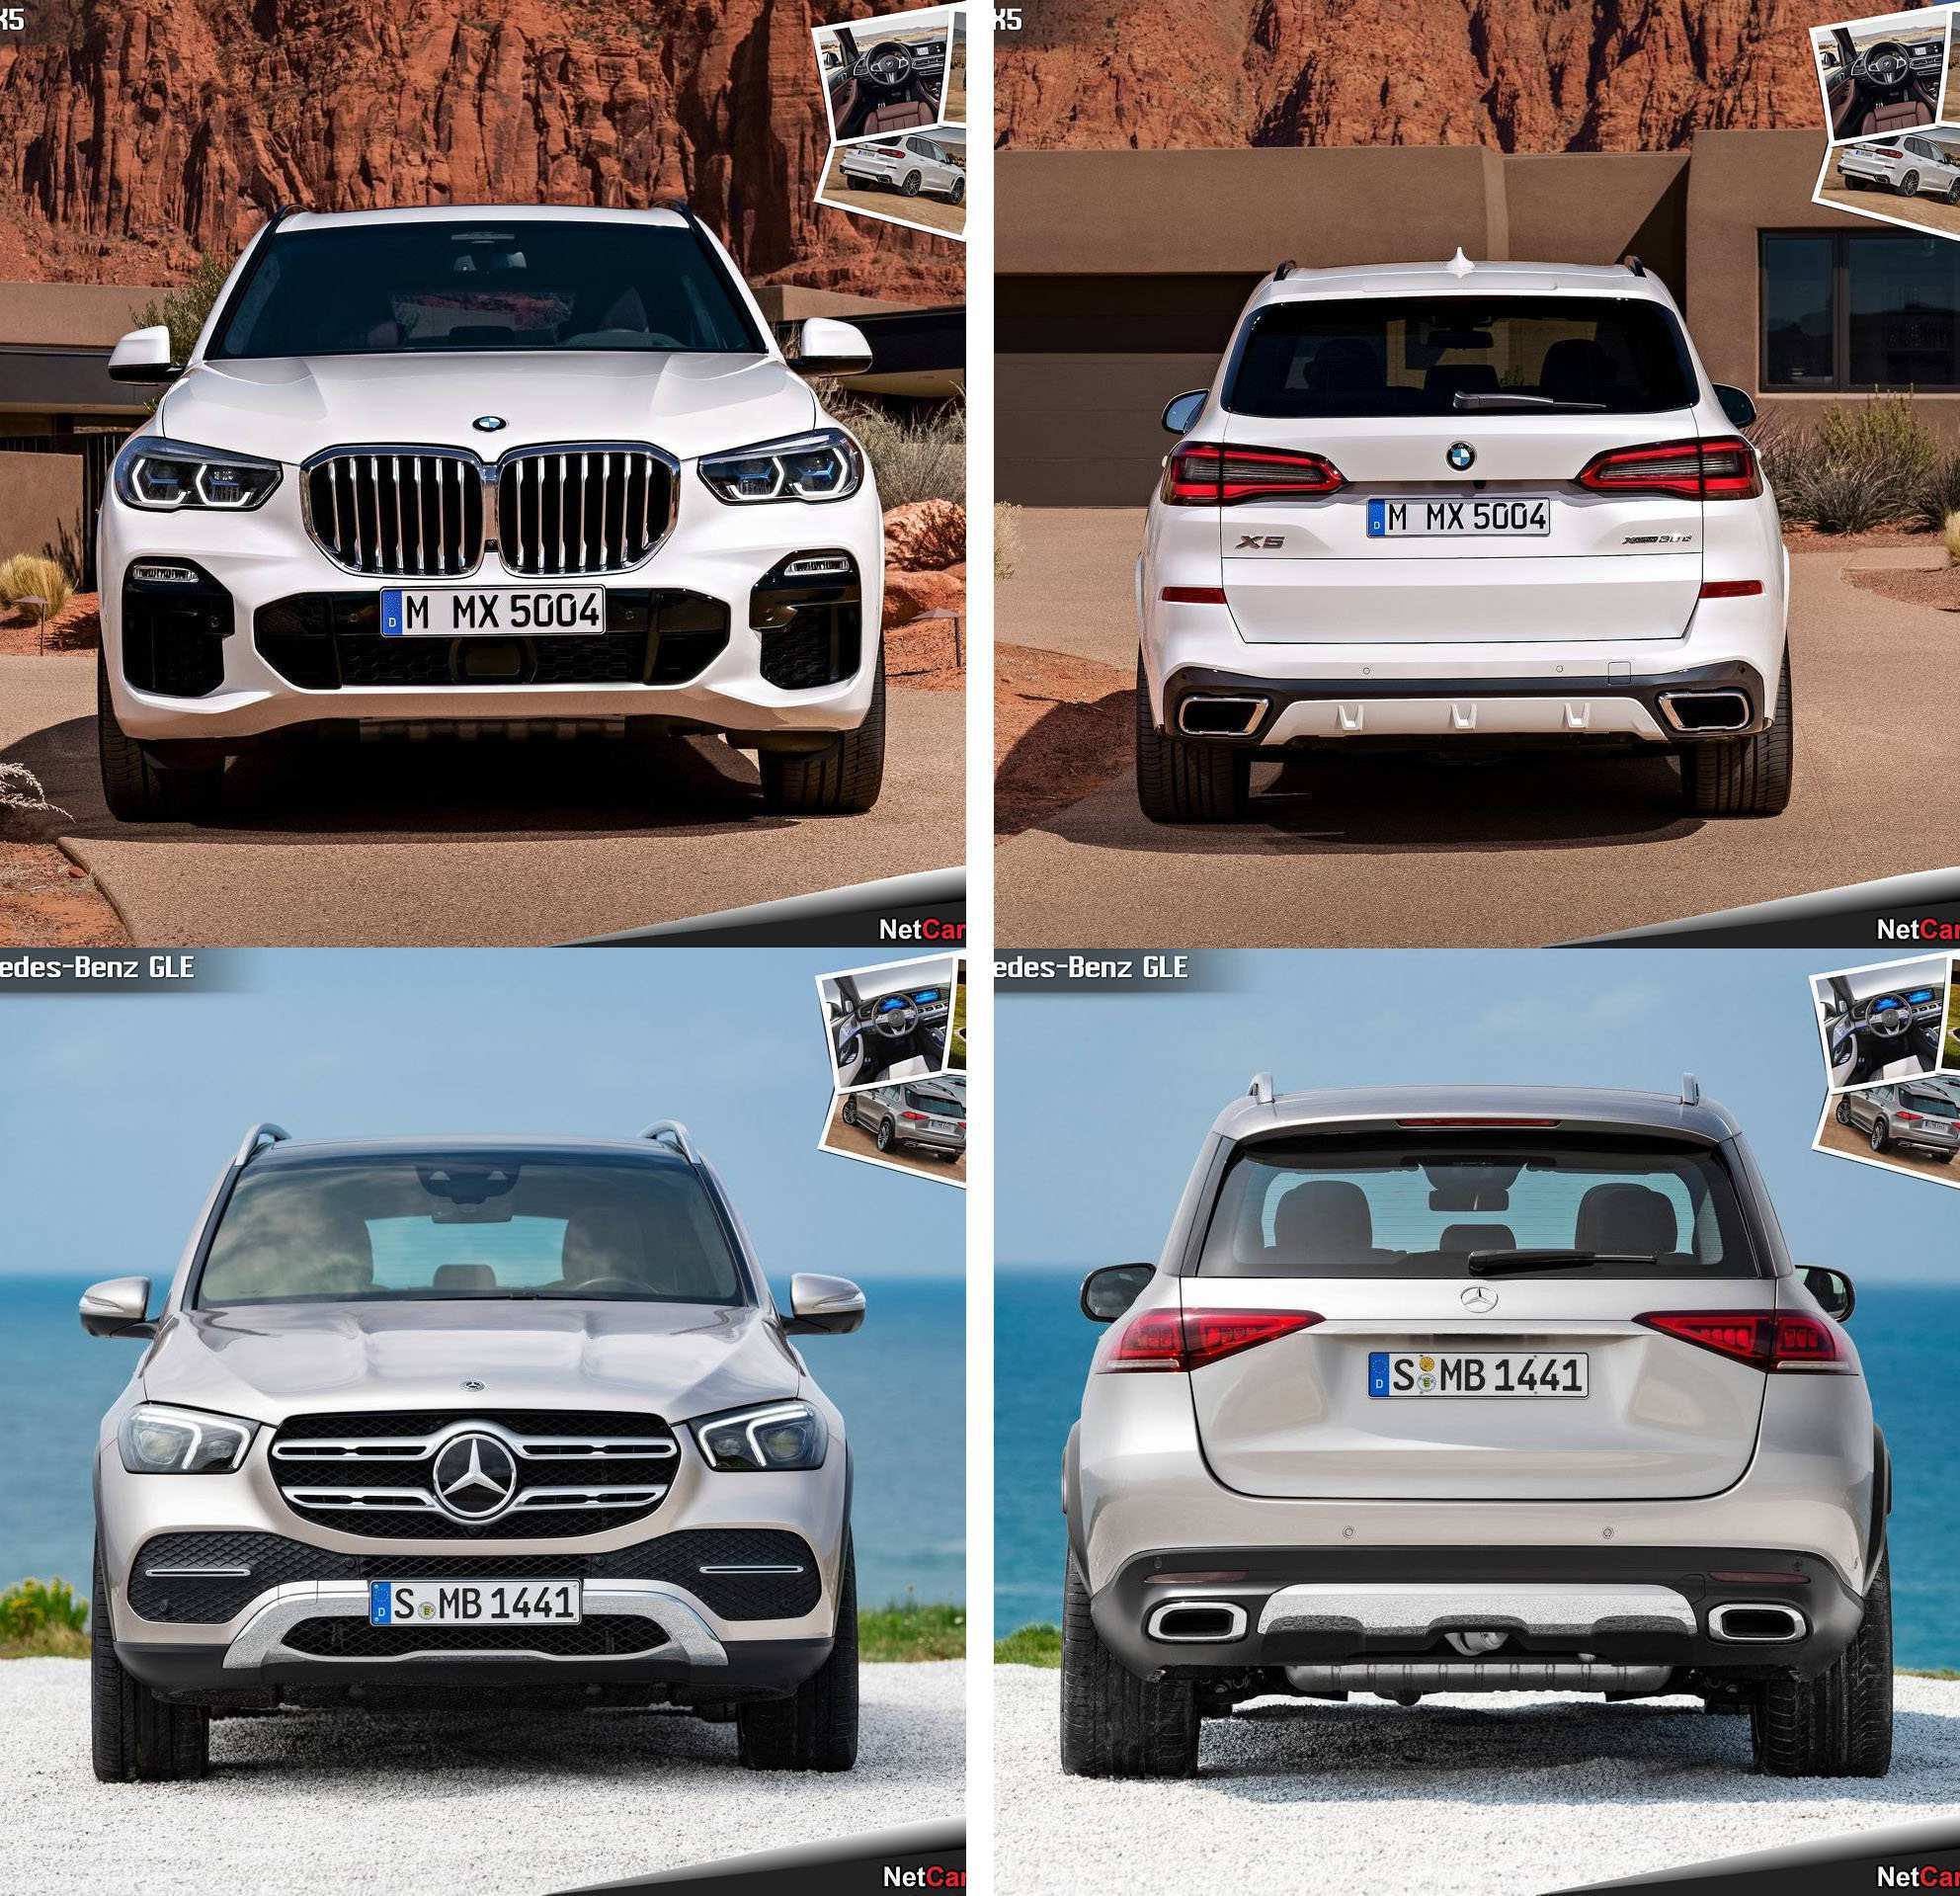 77 Great 2020 Gle 350 Vs BMW X5 Overview with 2020 Gle 350 Vs BMW X5